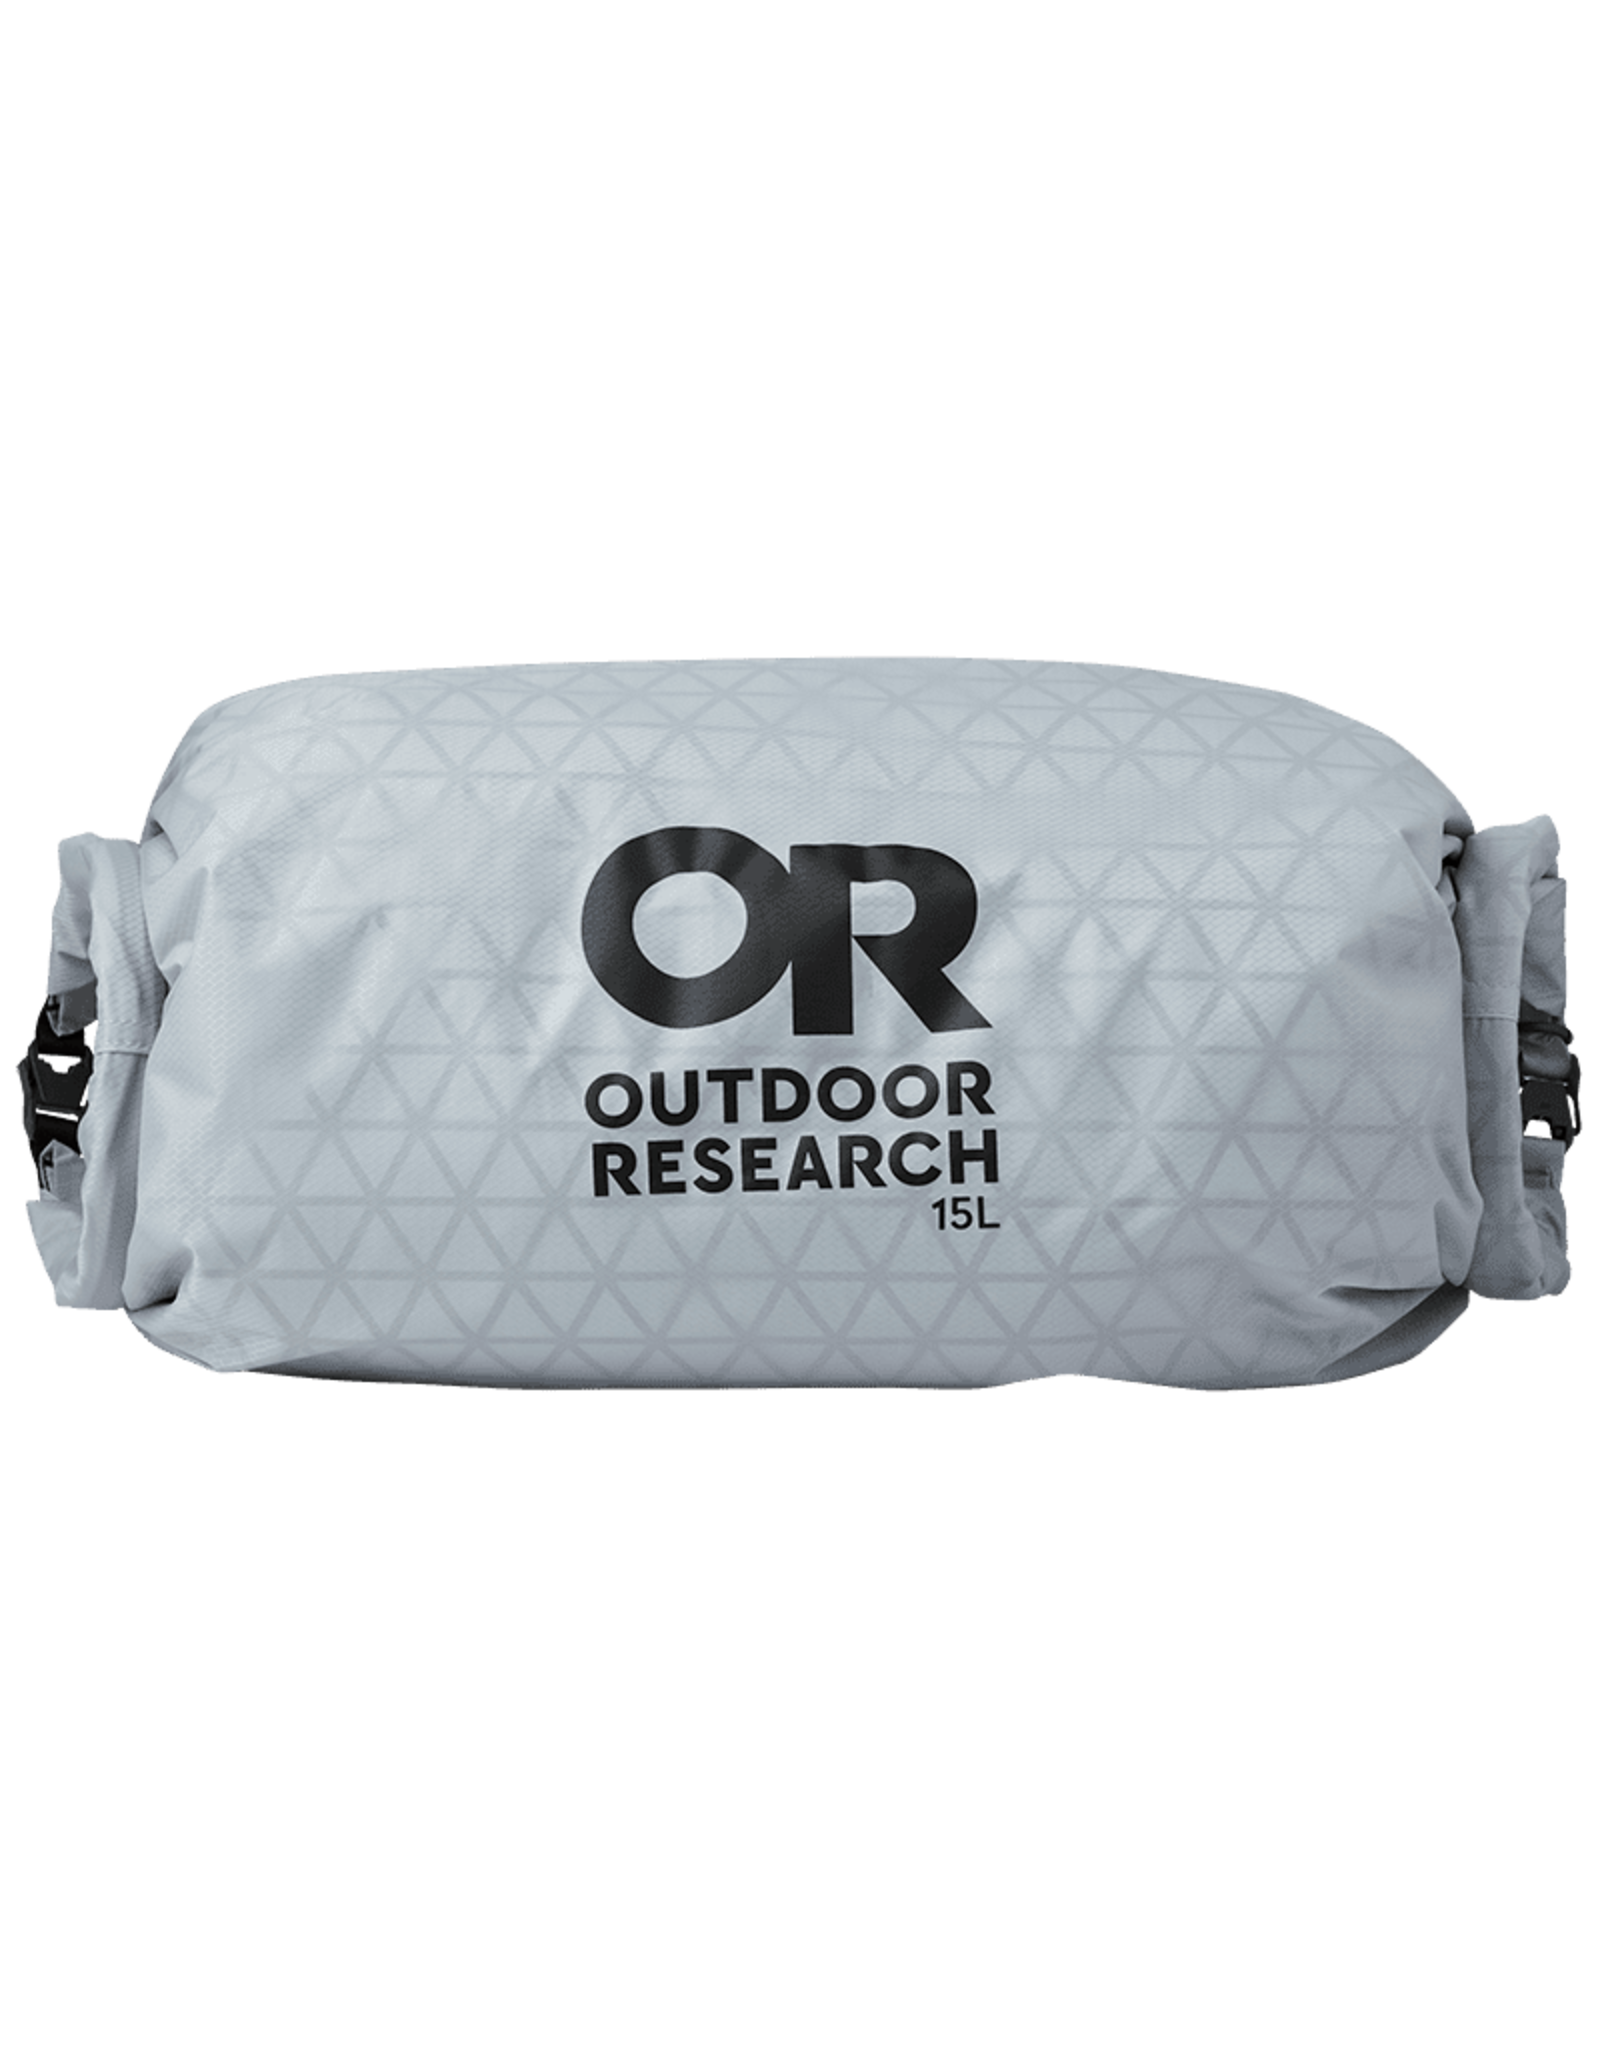 OUTDOOR RESEARCH DIRTY/CLEAN BAG